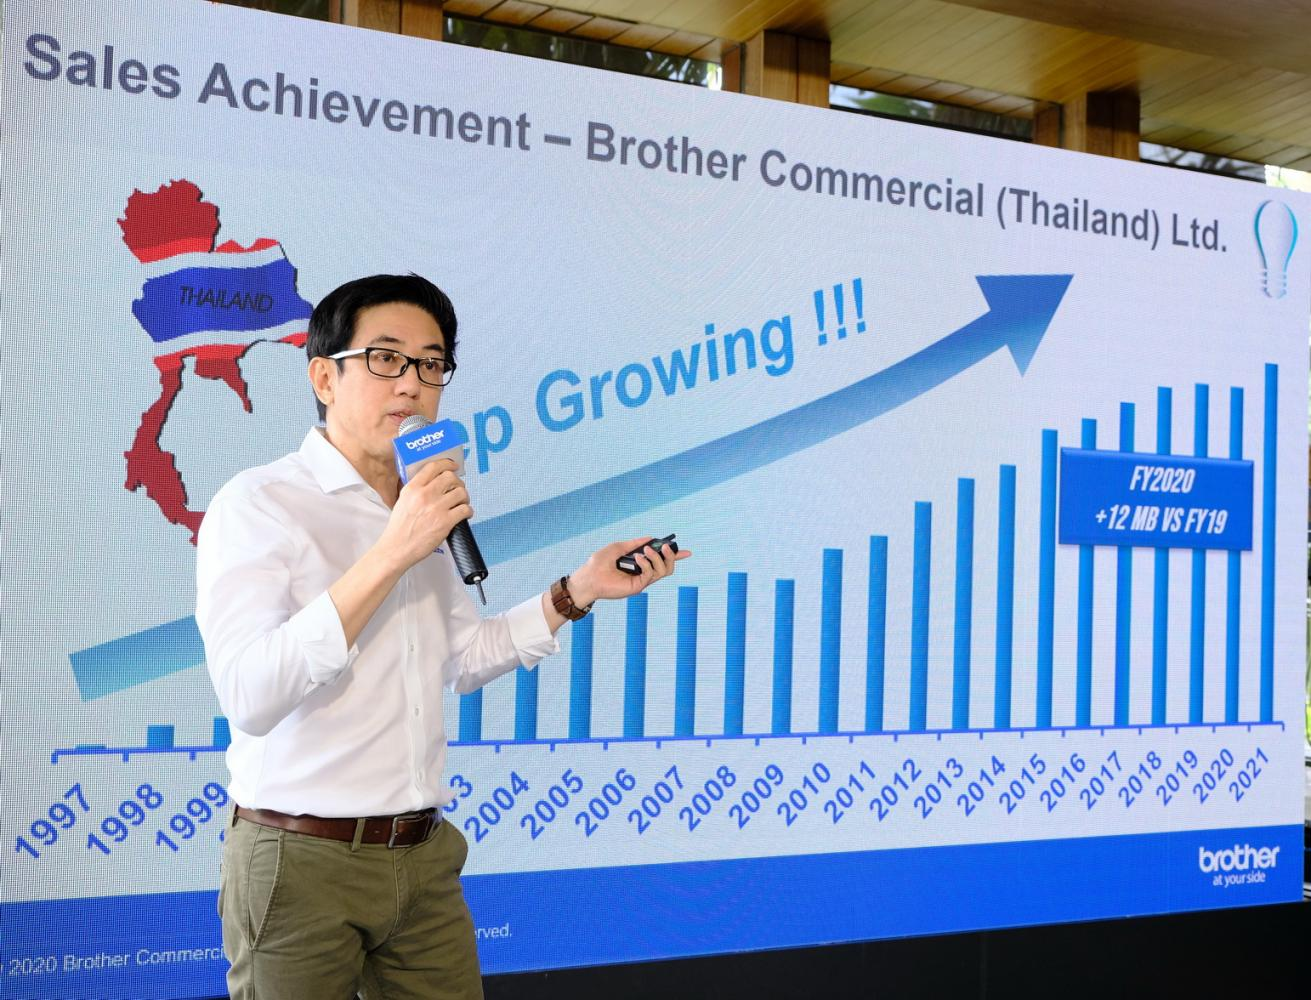 Brother sees 8% growth for fiscal 2021